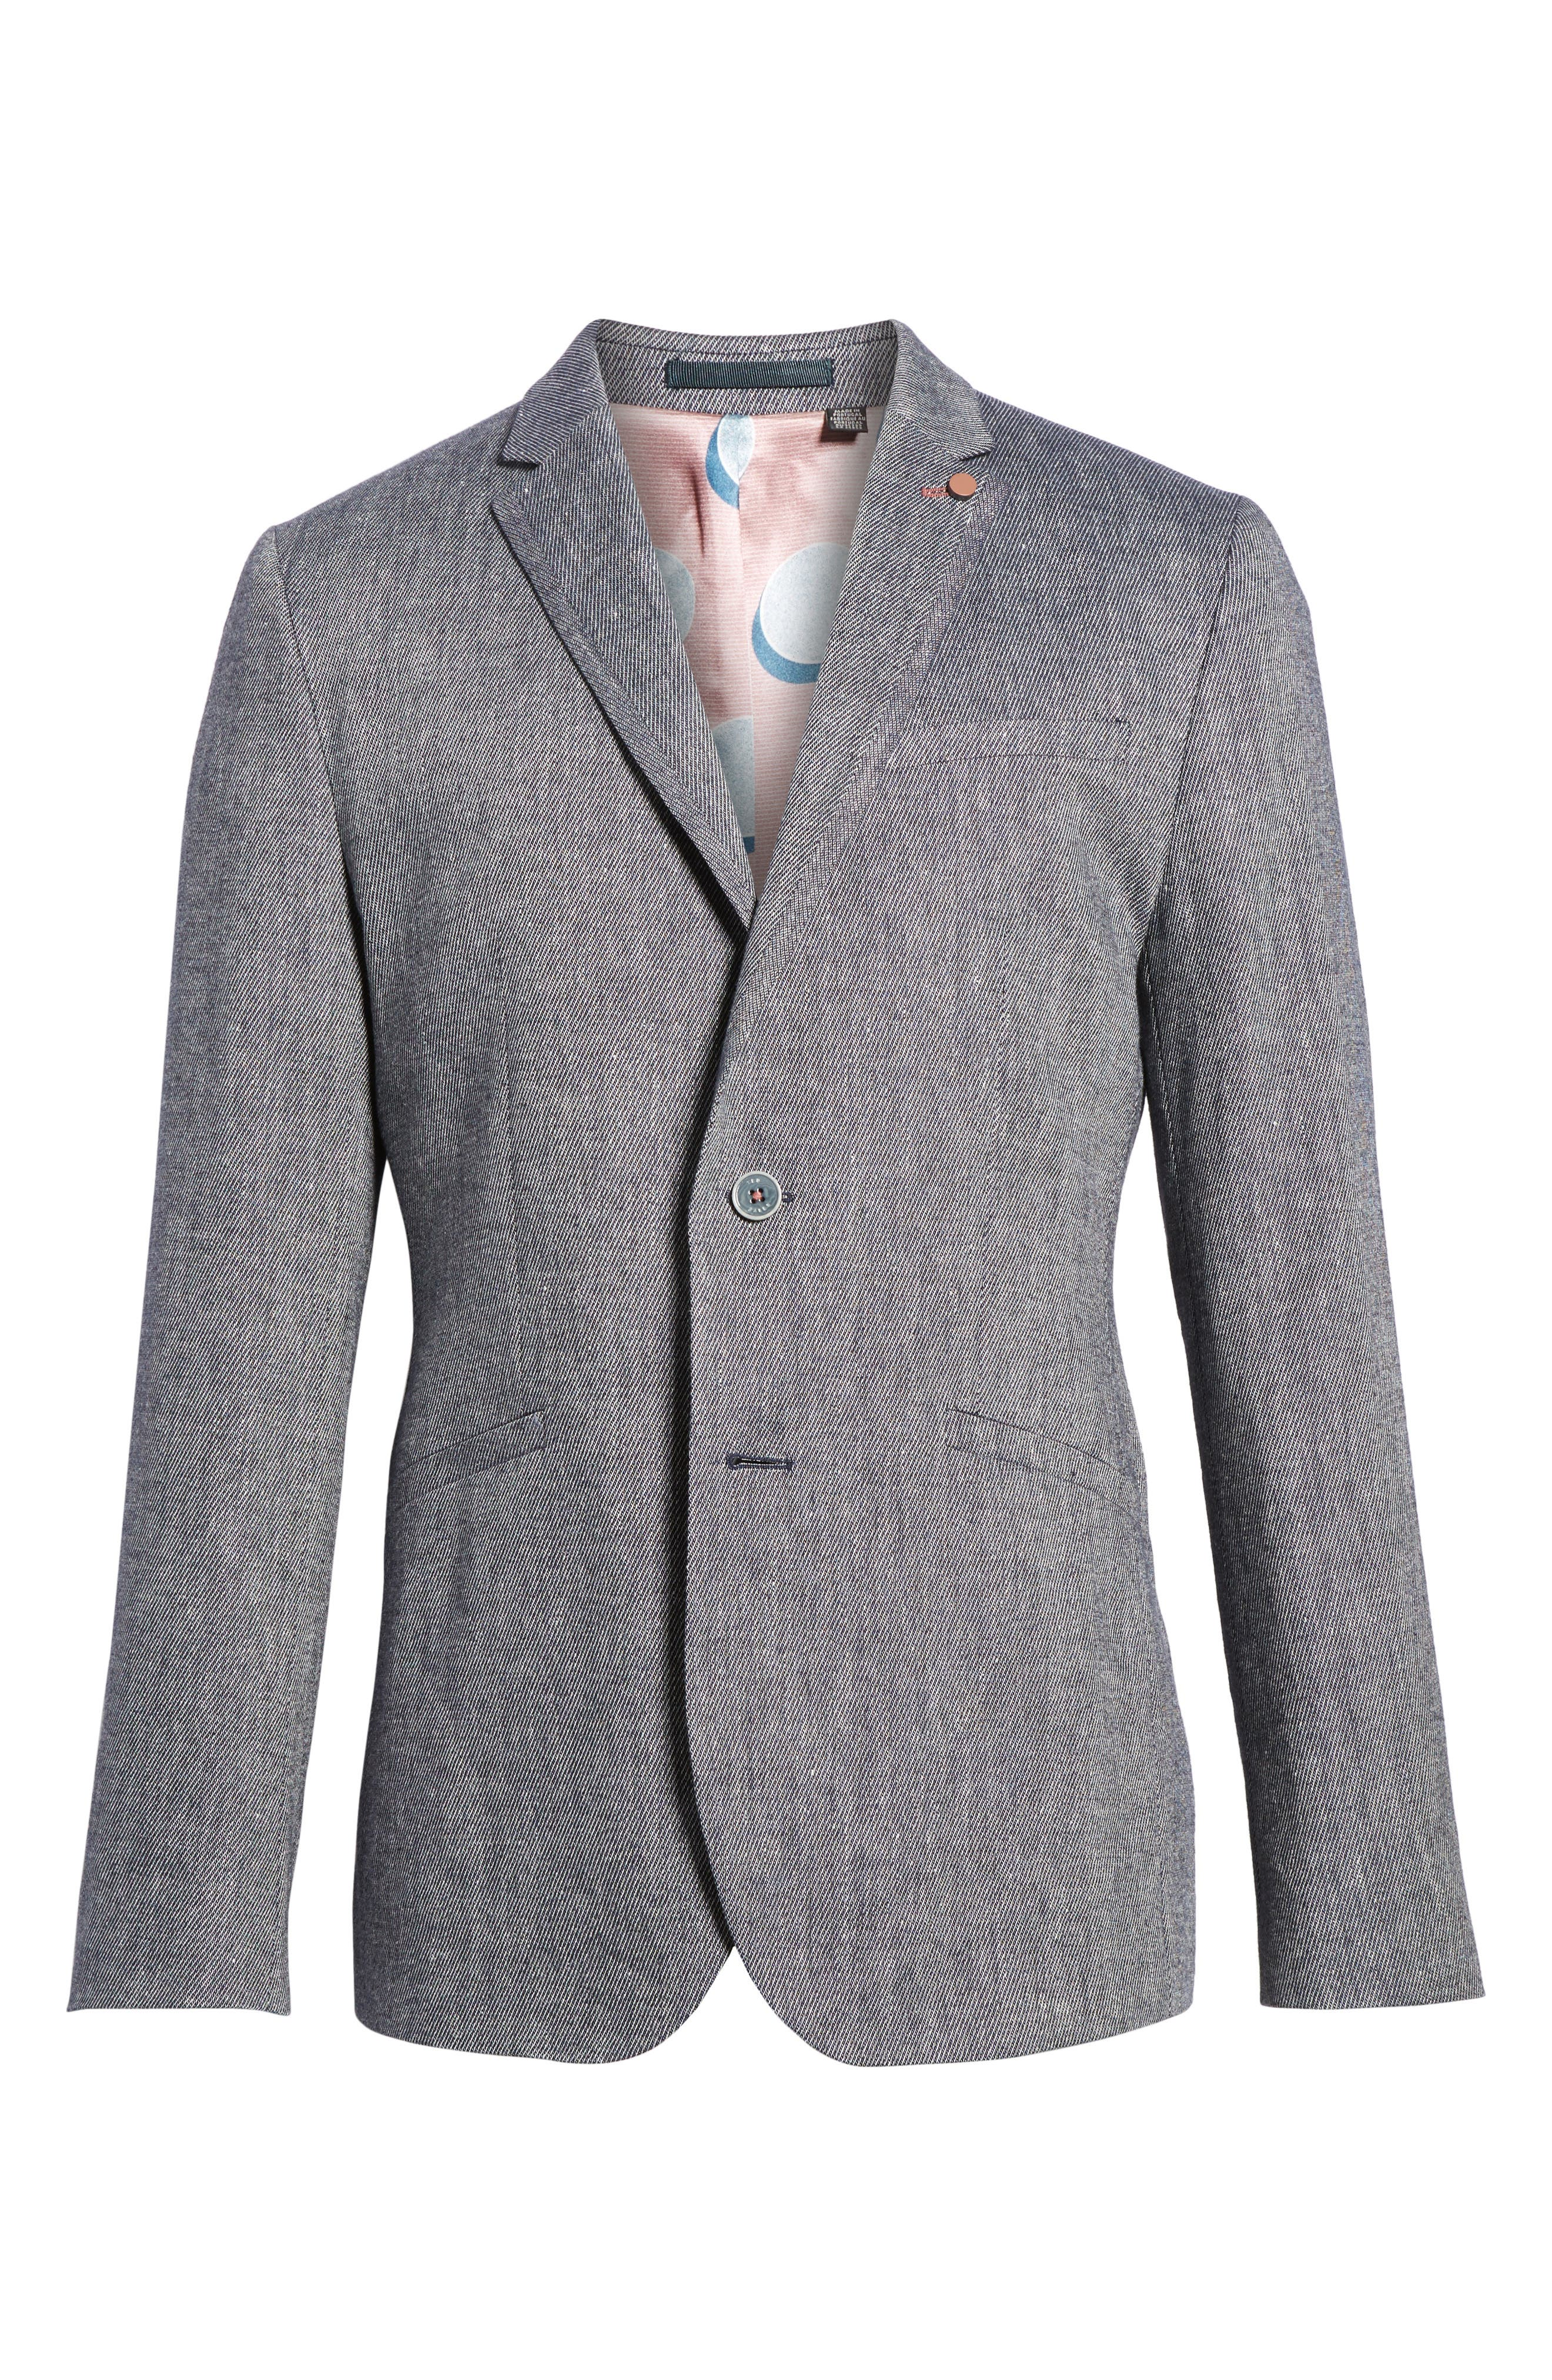 Hines Linen Blend Blazer,                             Alternate thumbnail 6, color,                             Blue